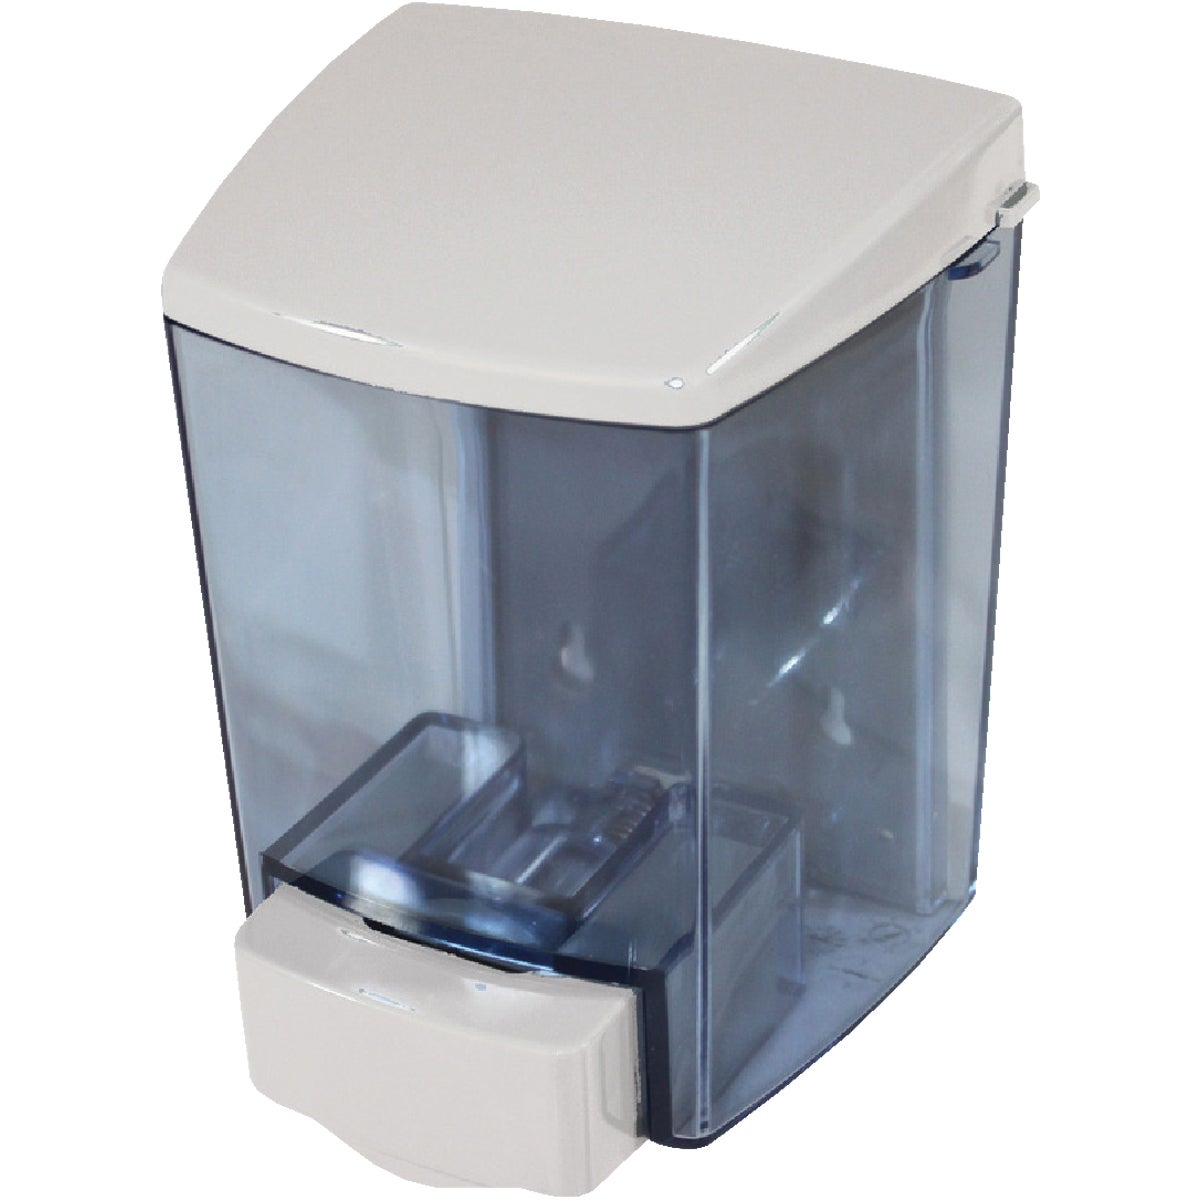 TANK SOAP DISPENSER - 3300-90 by Impact Prod